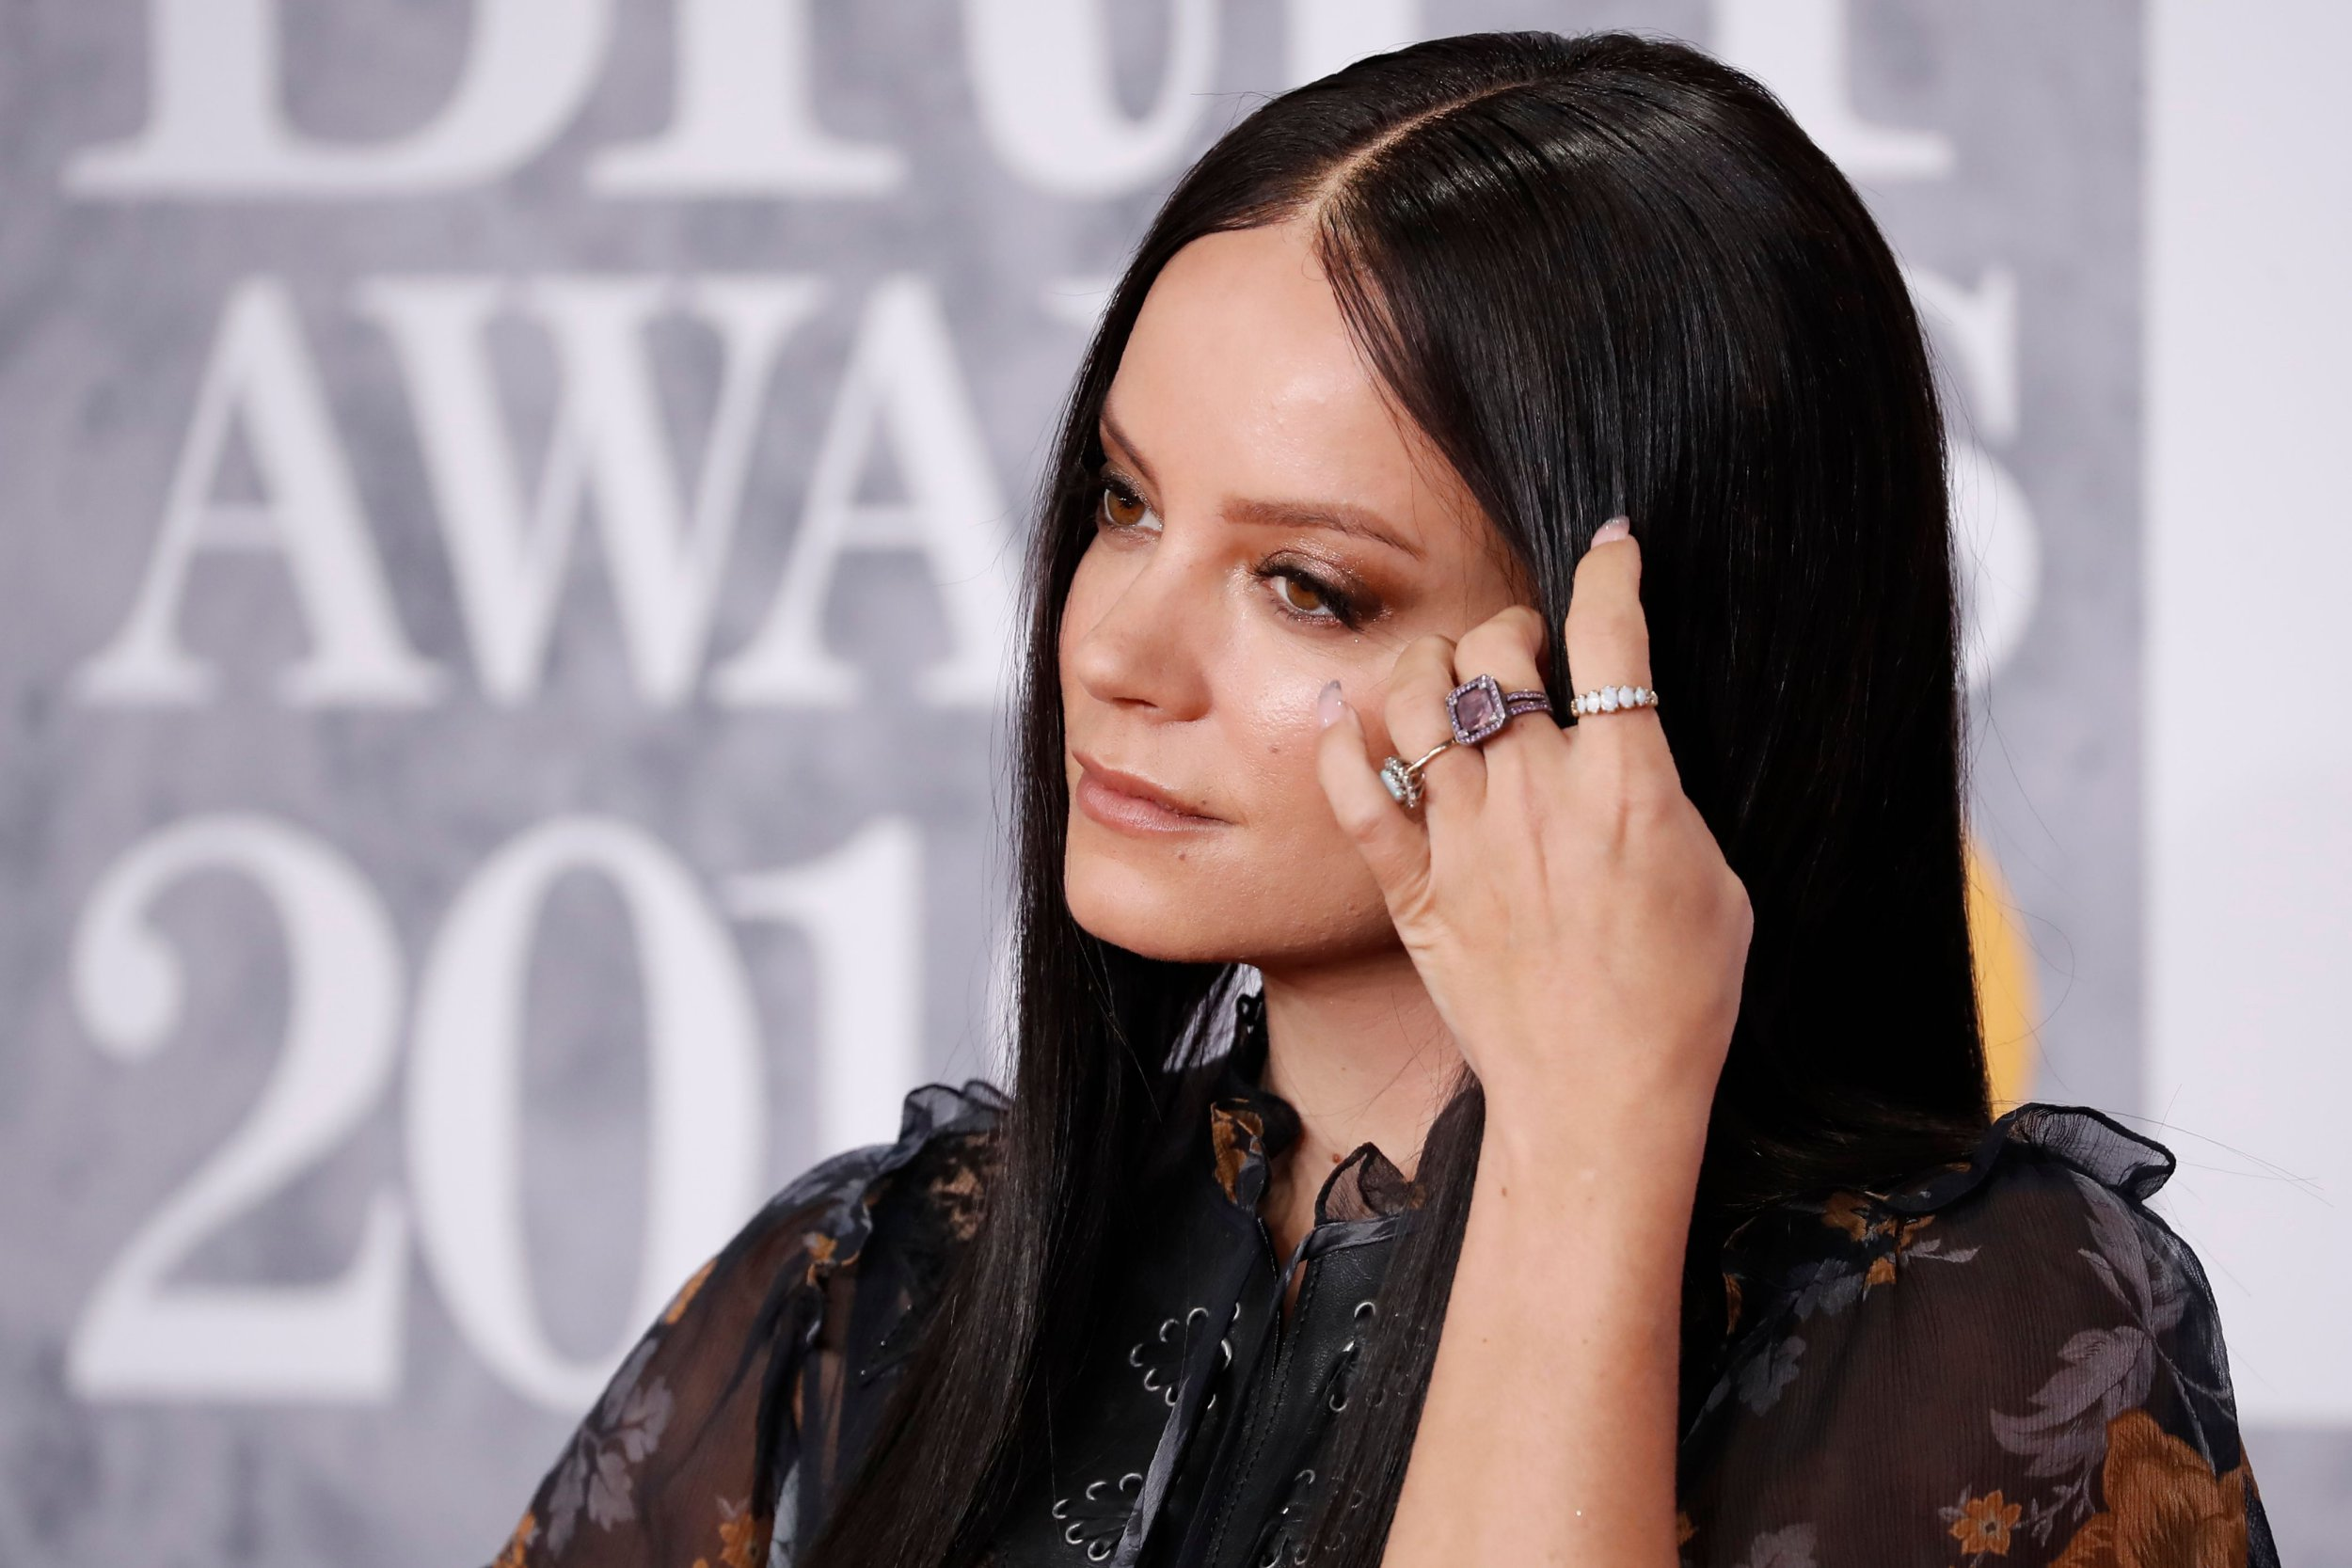 British singer-songwriter Lily Allen poses on the red carpet on arrival for the BRIT Awards 2019 in London on February 20, 2019. (Photo by Tolga AKMEN / AFP) / RESTRICTED TO EDITORIAL USE NO POSTERS NO MERCHANDISE NO USE IN PUBLICATIONS DEVOTED TO ARTISTSTOLGA AKMEN/AFP/Getty Images